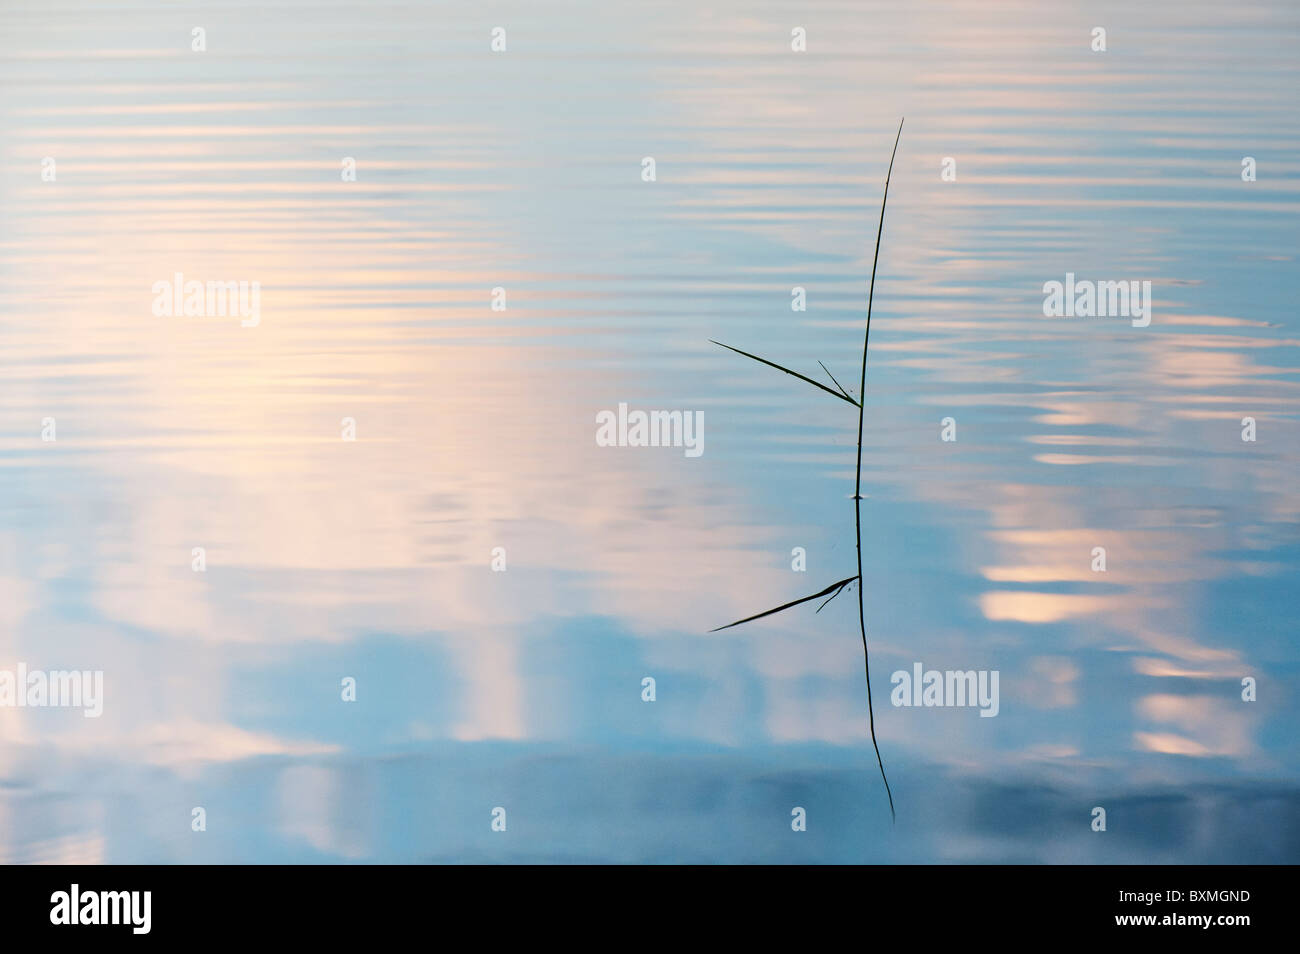 Silhouette Grass stem reflecting in a rippling pool at dawn in india - Stock Image